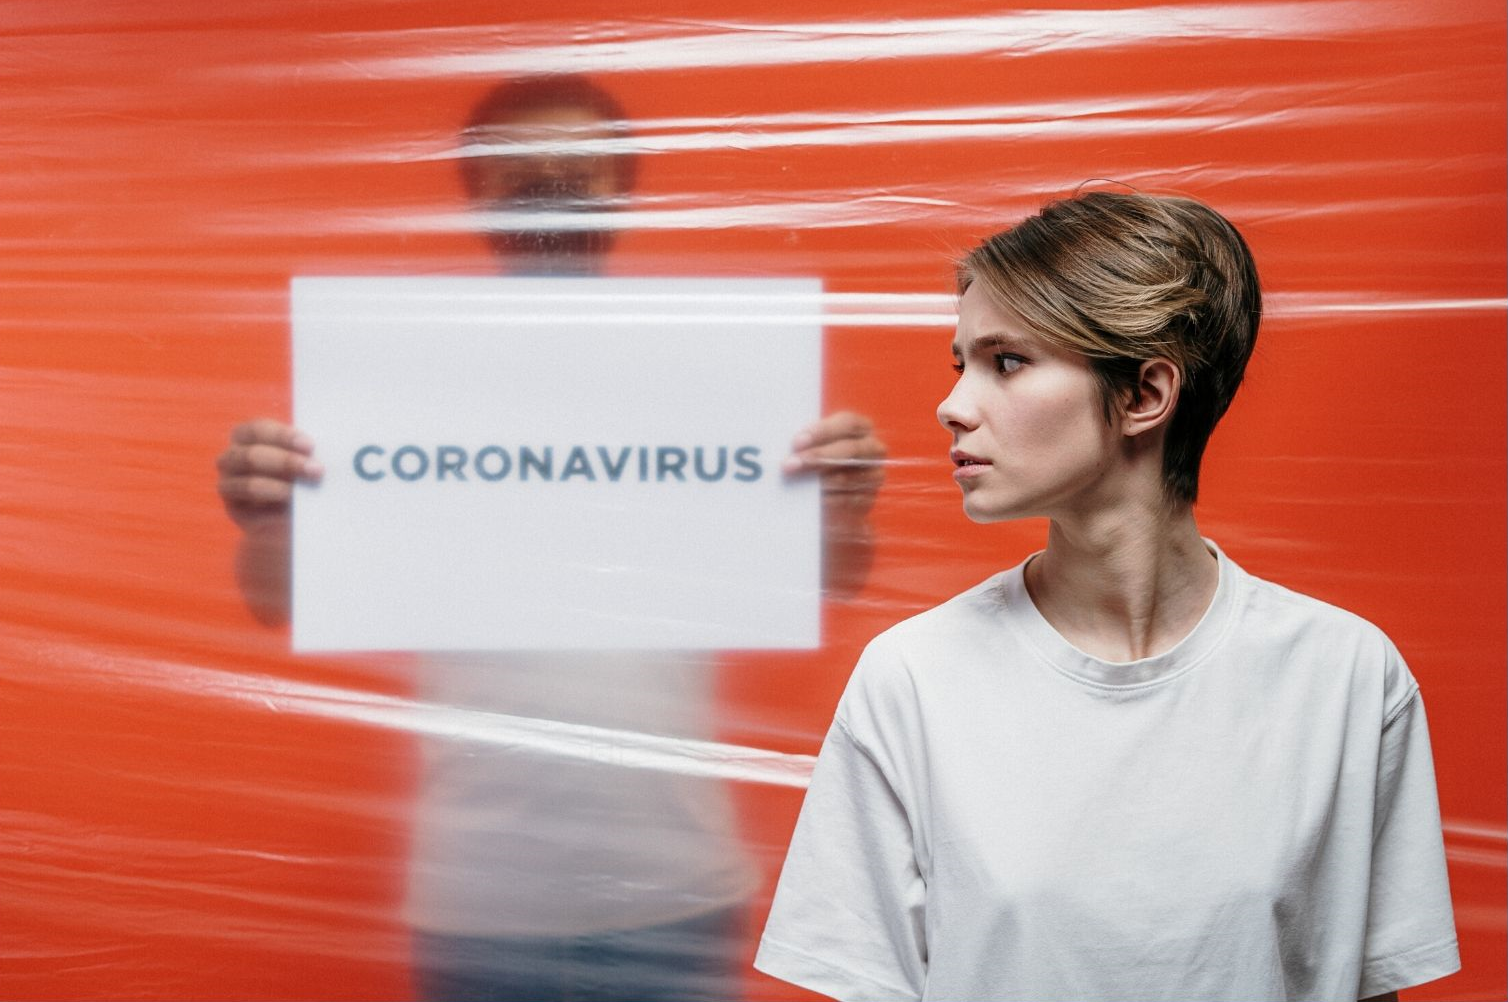 Lady worried looking back at coronavirus sign - whether her insurer will pay covid claims.